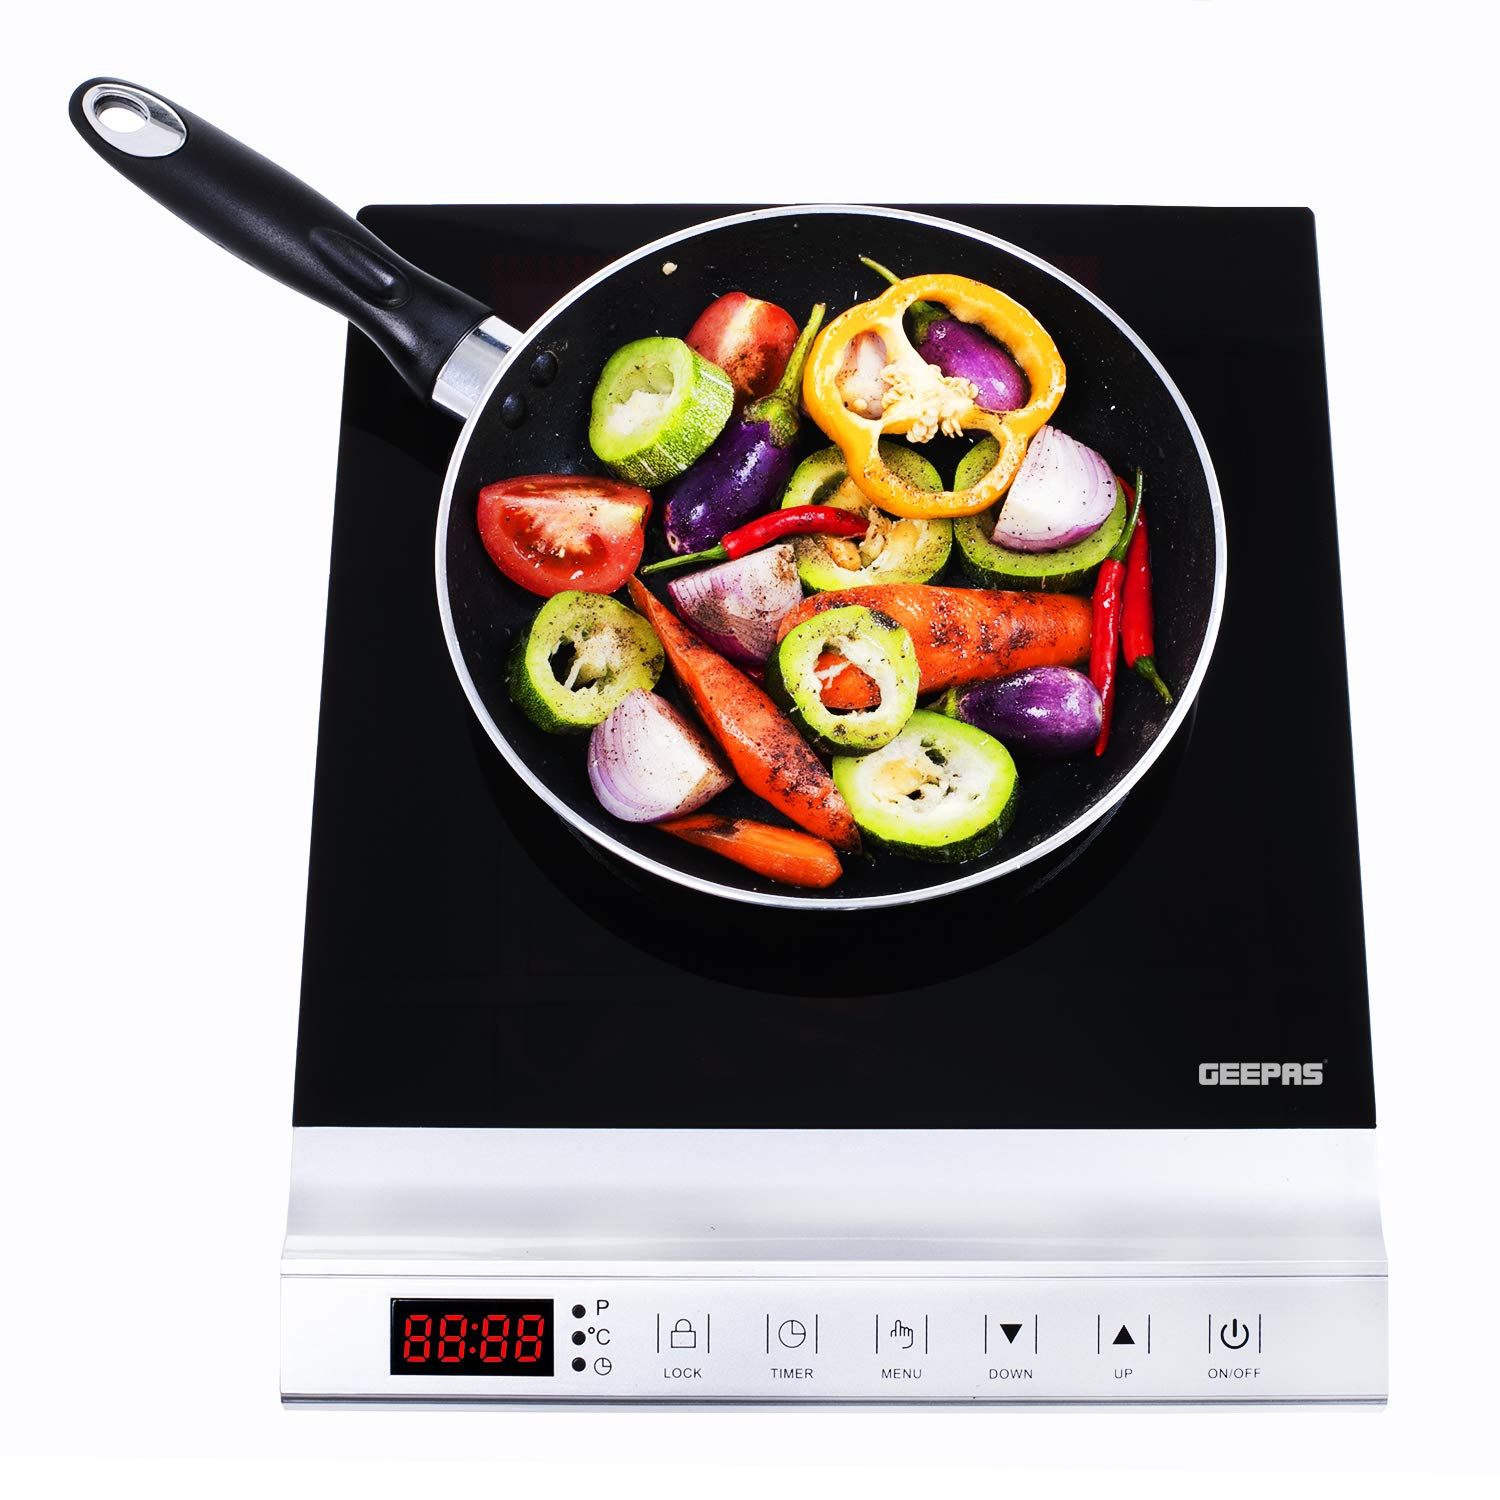 Geepas 2000W Programmable Induction Cooker for Fast and Precise Cooking – with Touch Control, LED Display, 10 Power Levels and Child-Lock Protection - 2 Years Warranty